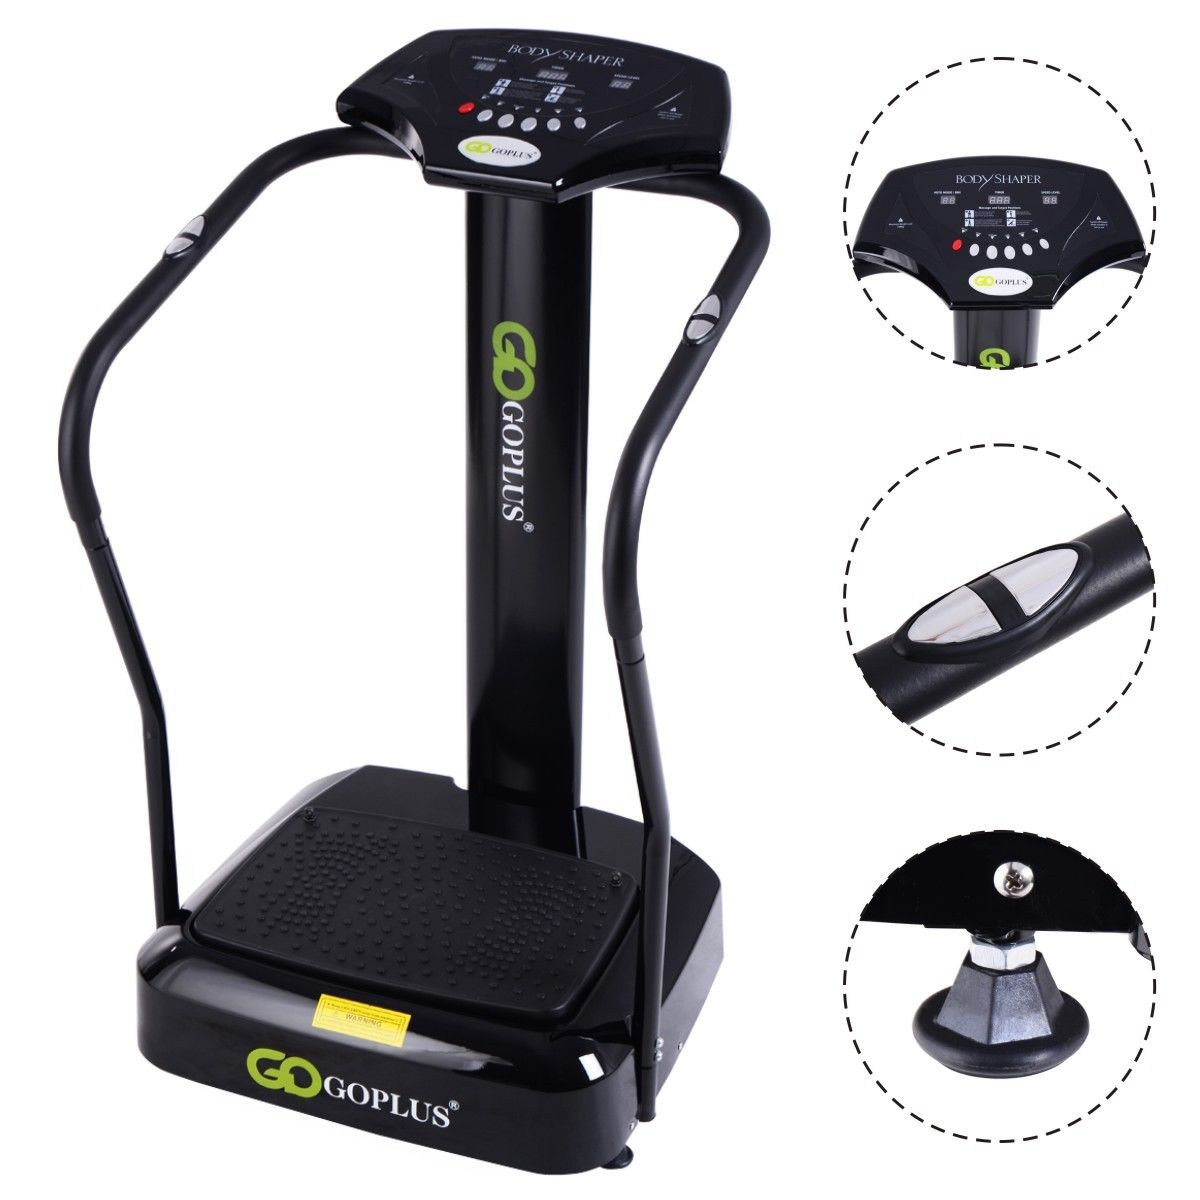 Goplus 2500W Crazy Fit Whole Body Vibration Platform Exercise Machine Massage Massager